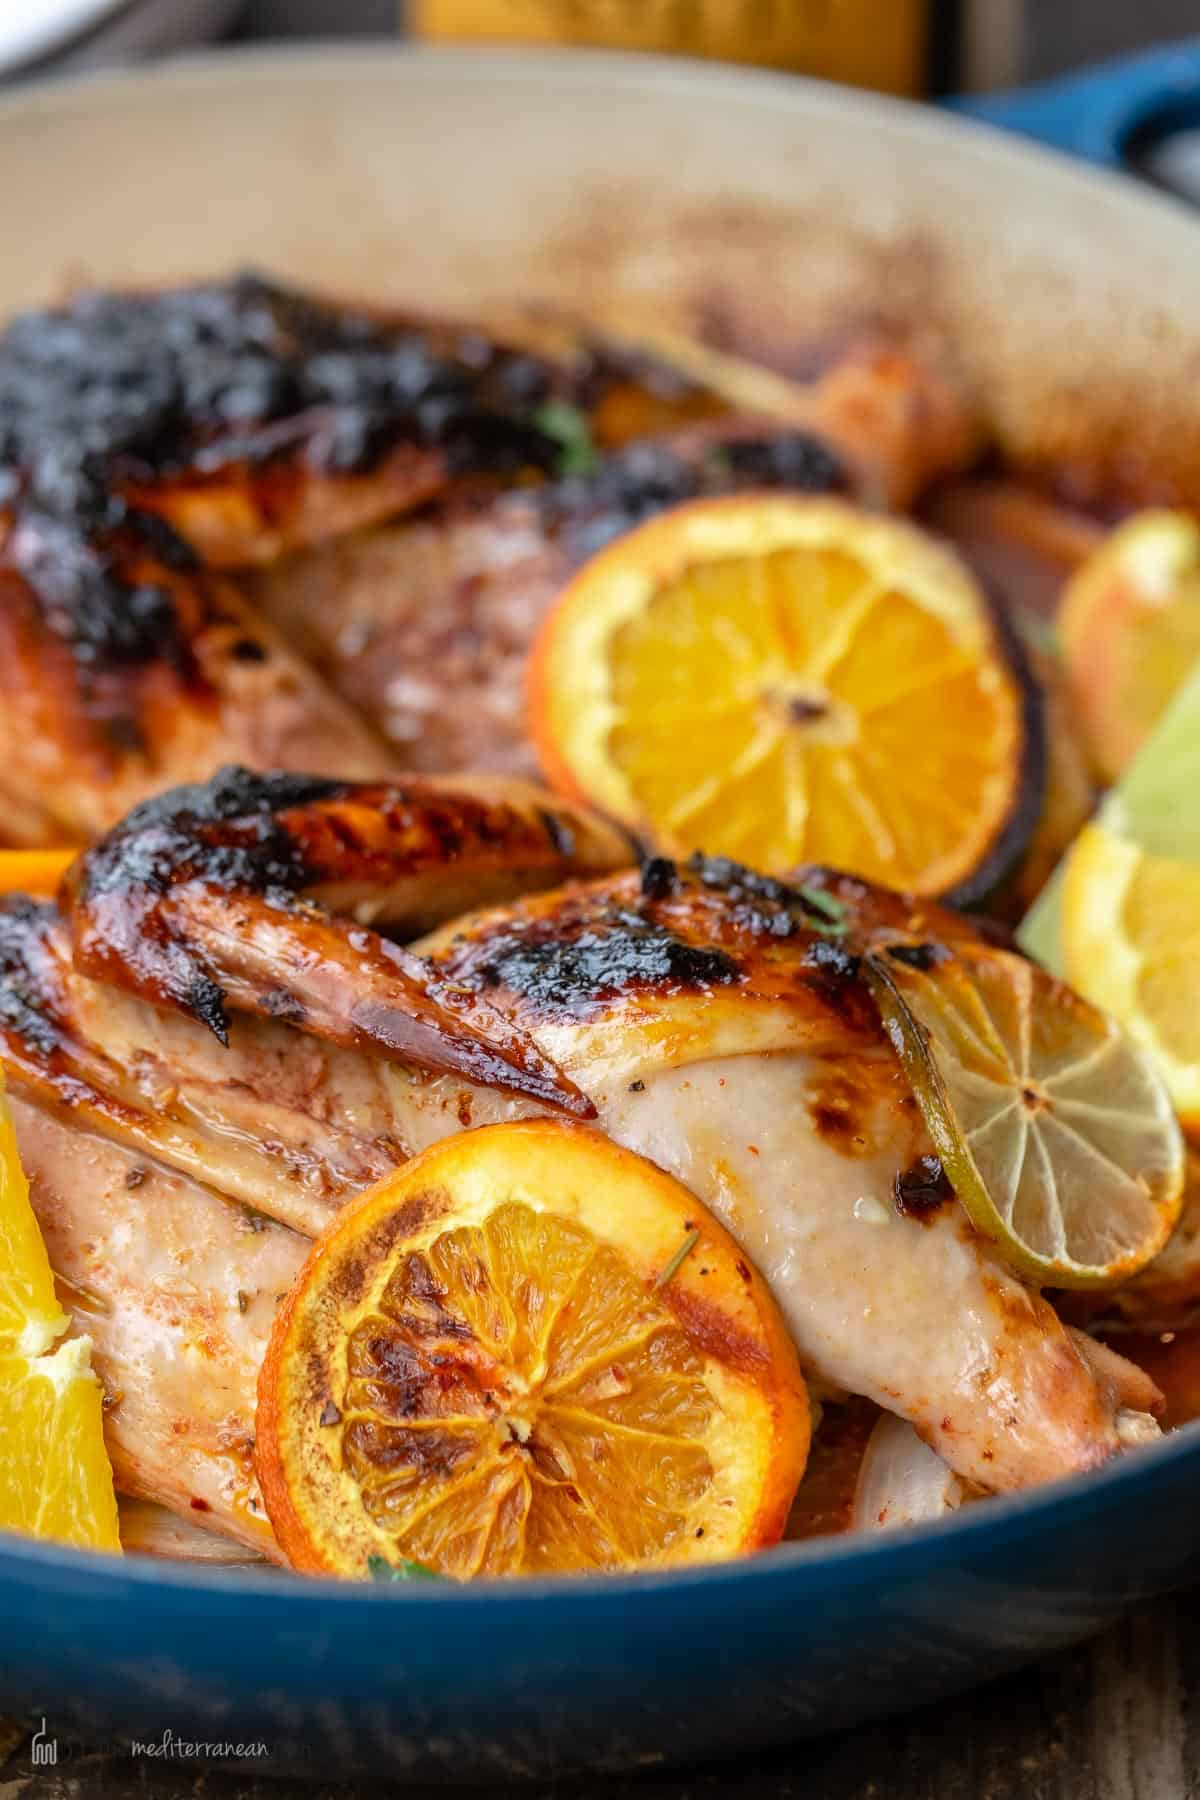 Side view of roasted rosemary chicken with orange and lime slices